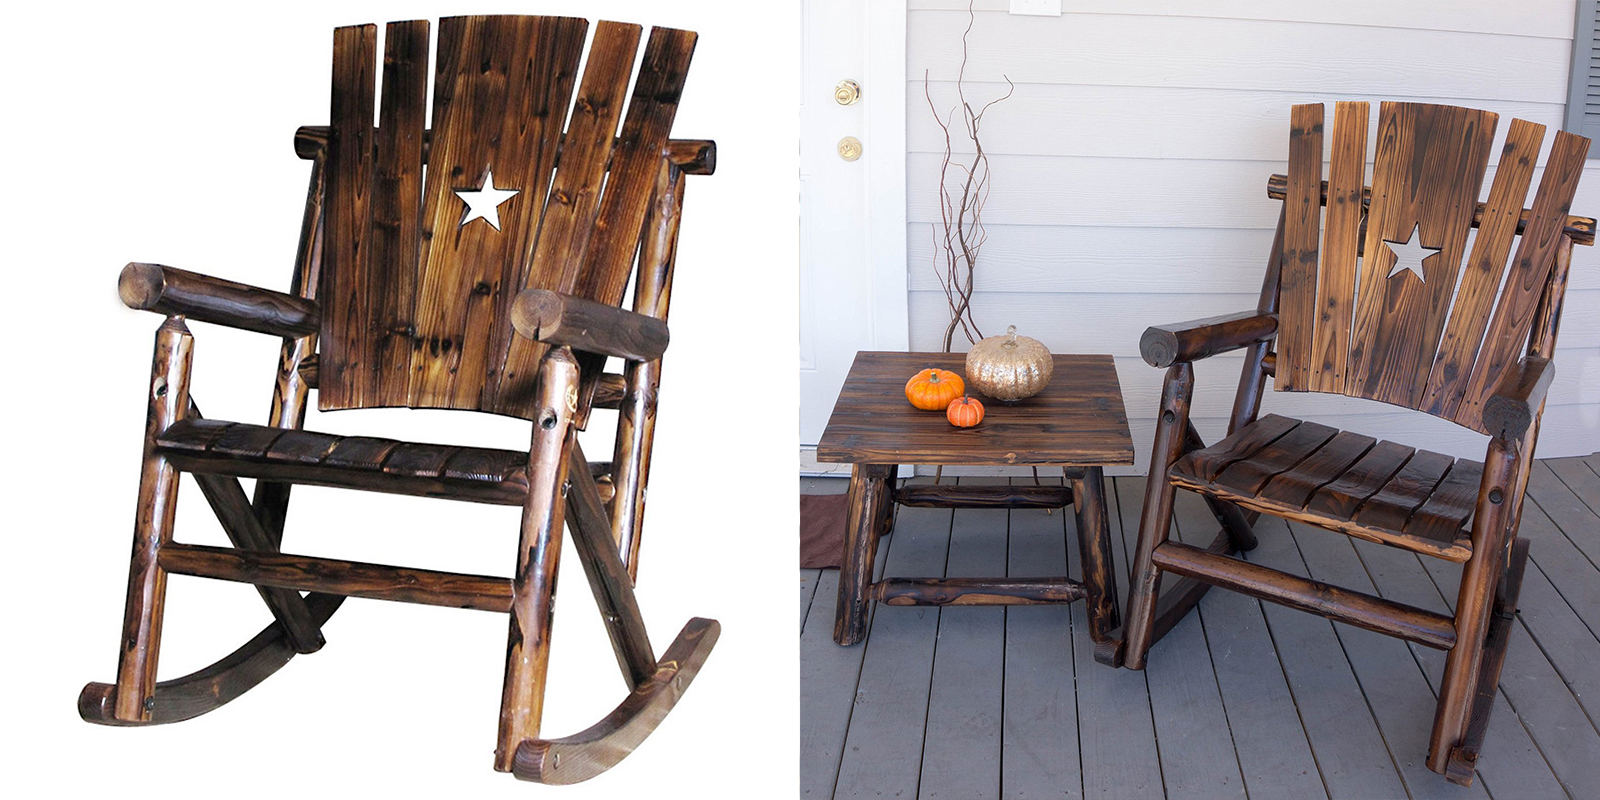 Patio Chair - Single Rocker with Star